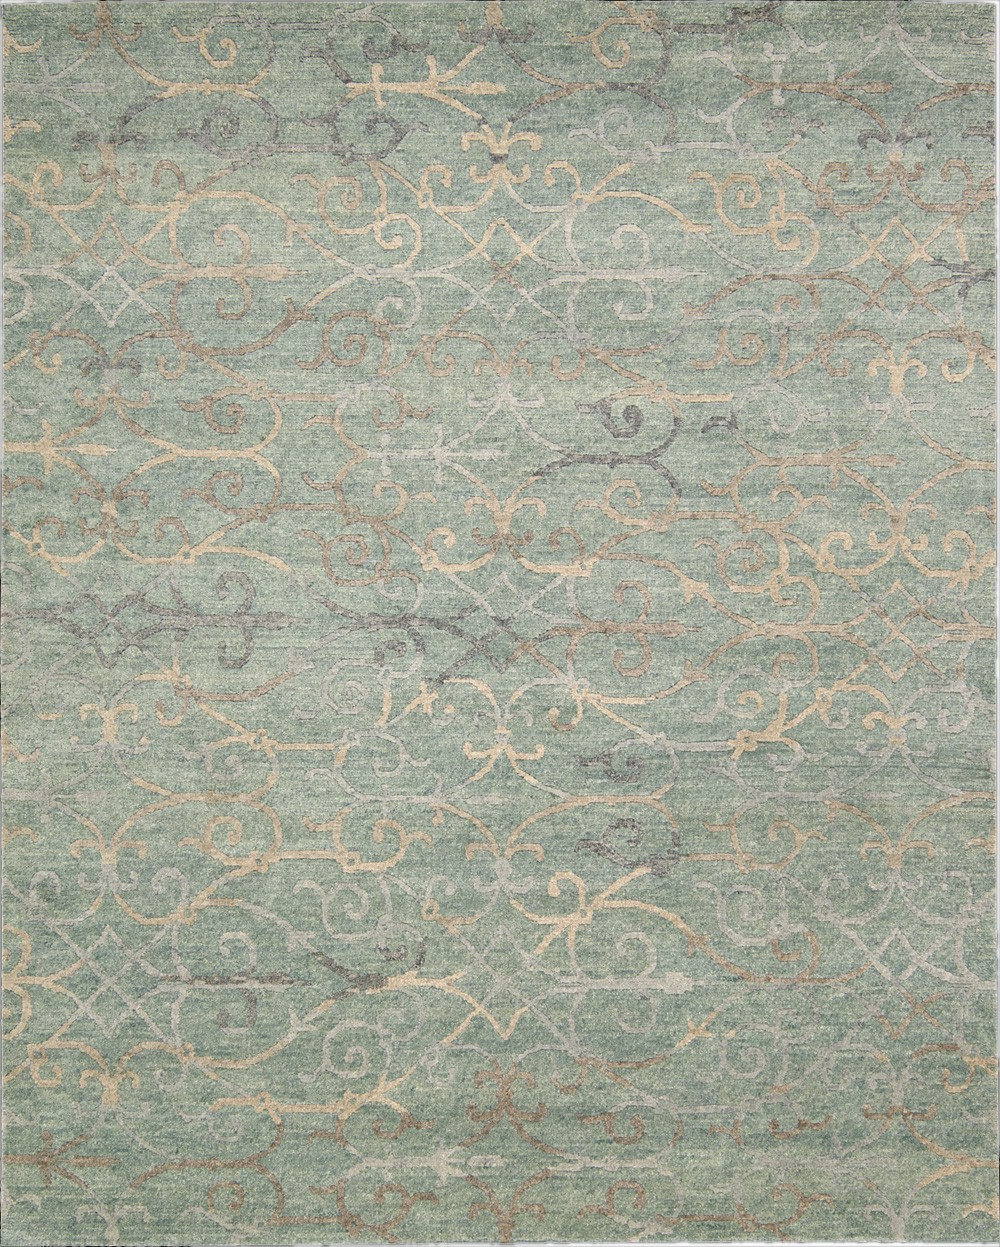 Nourison Tahoe Modern Mta05 Seagl Area Rug Rugs A Bound